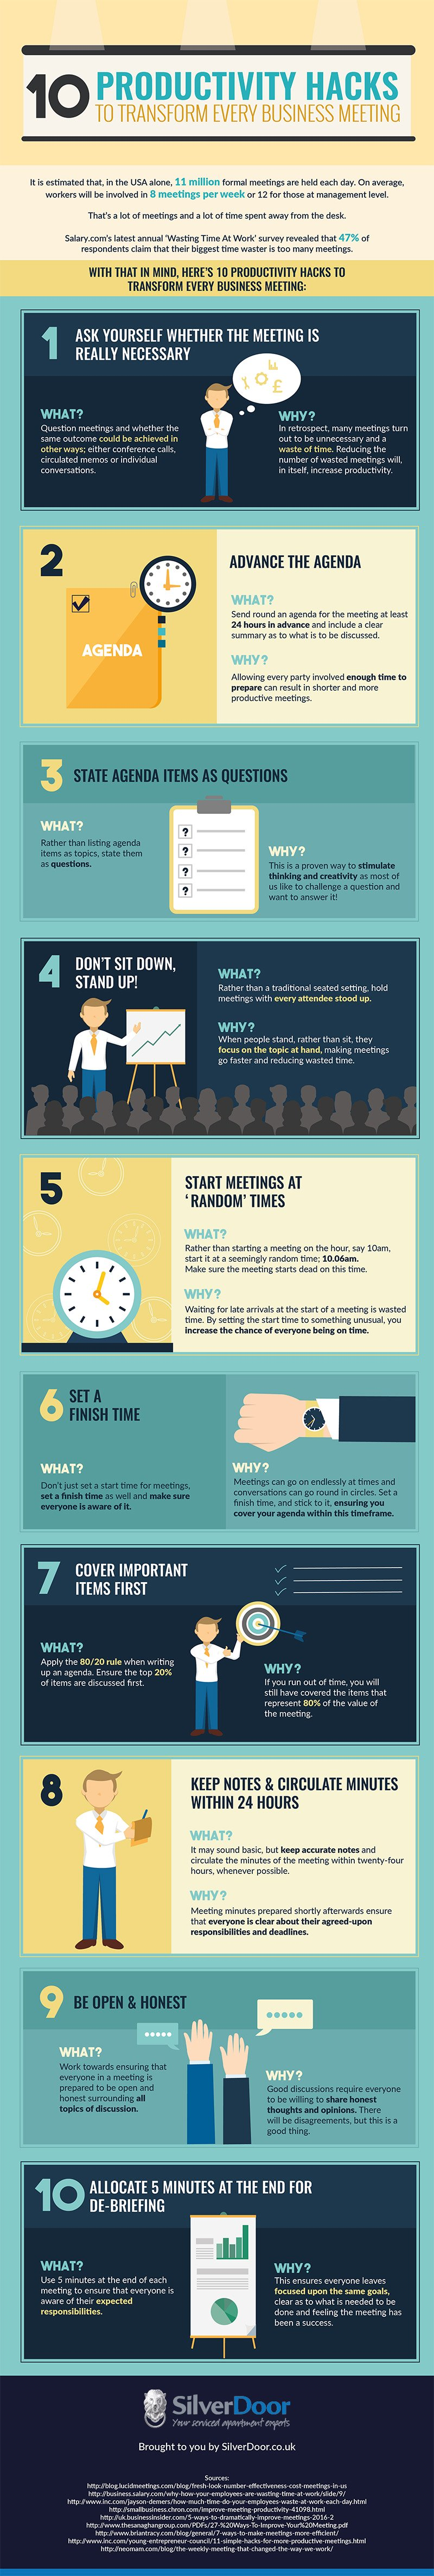 10 Productivity Hacks to Transform Any Business Meeting - Infographic